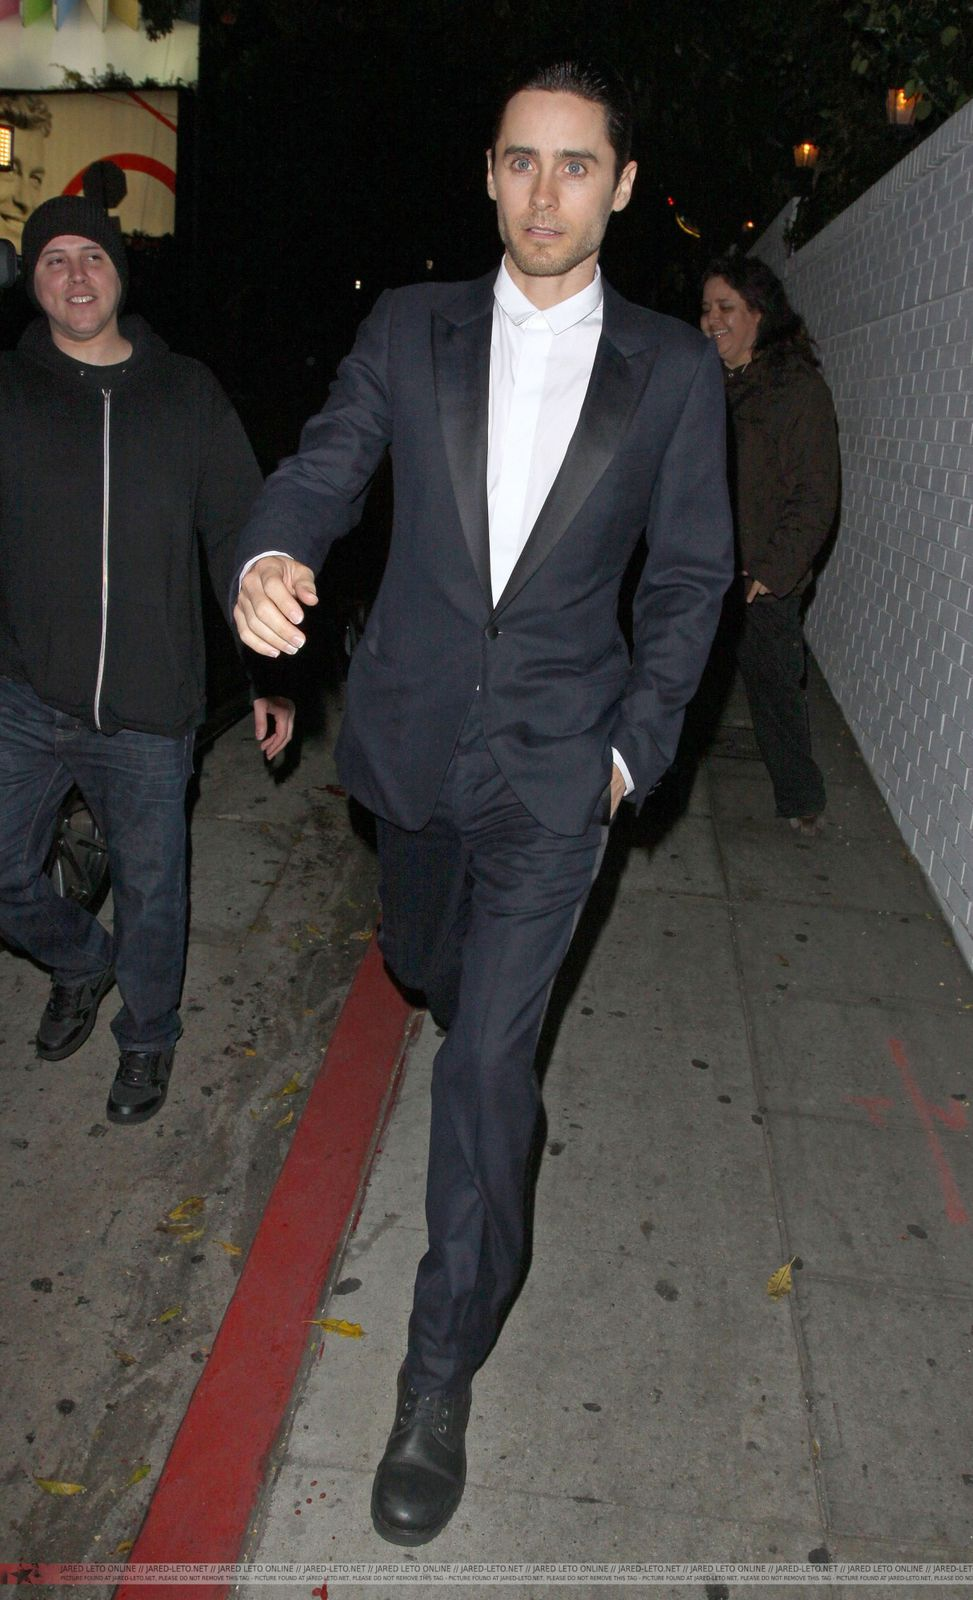 Jared Leto Leaving Chateau Marmont - Los Angeles - 21 Février 2012 0003